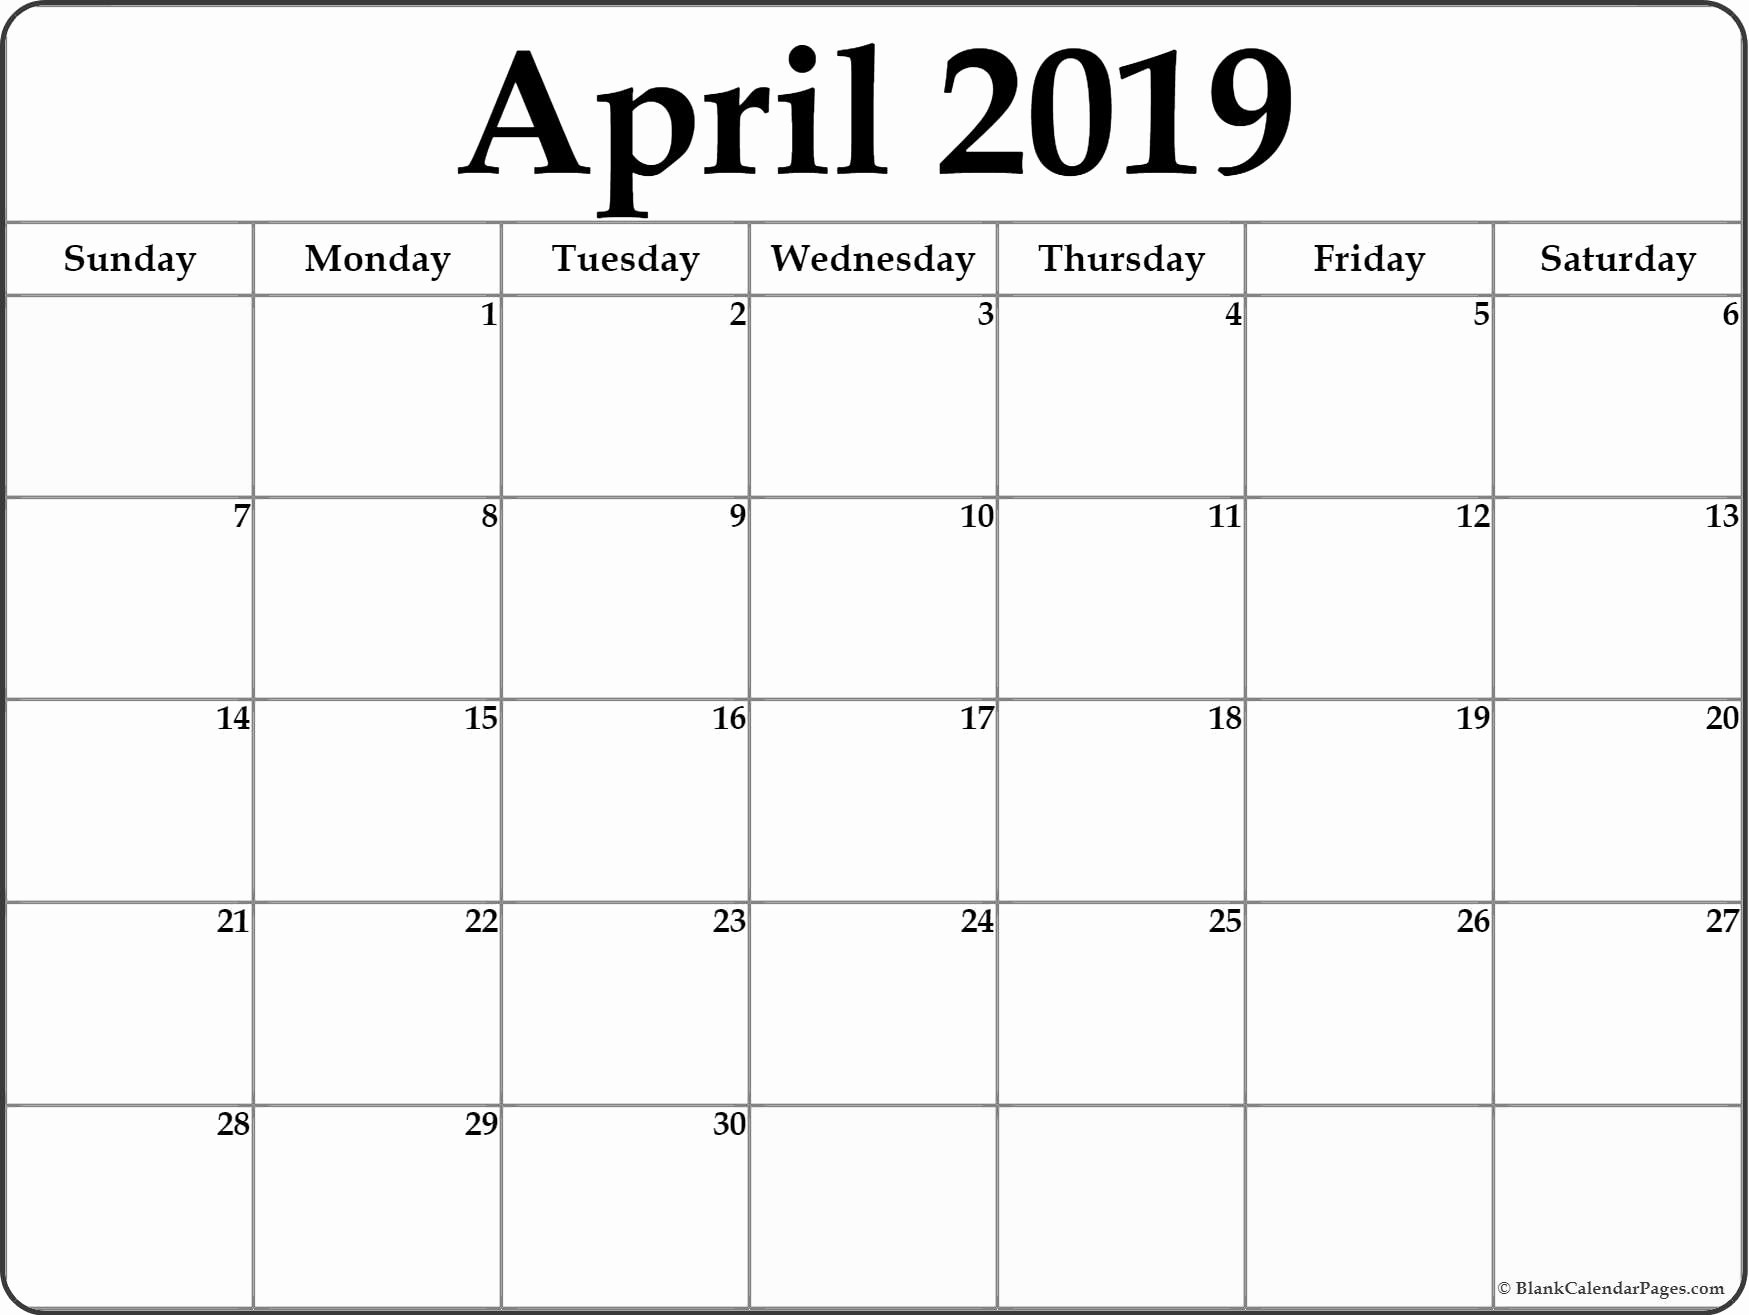 Free Printable Weekly Calendar 2019 Fresh April 2019 Blank Calendar Templates